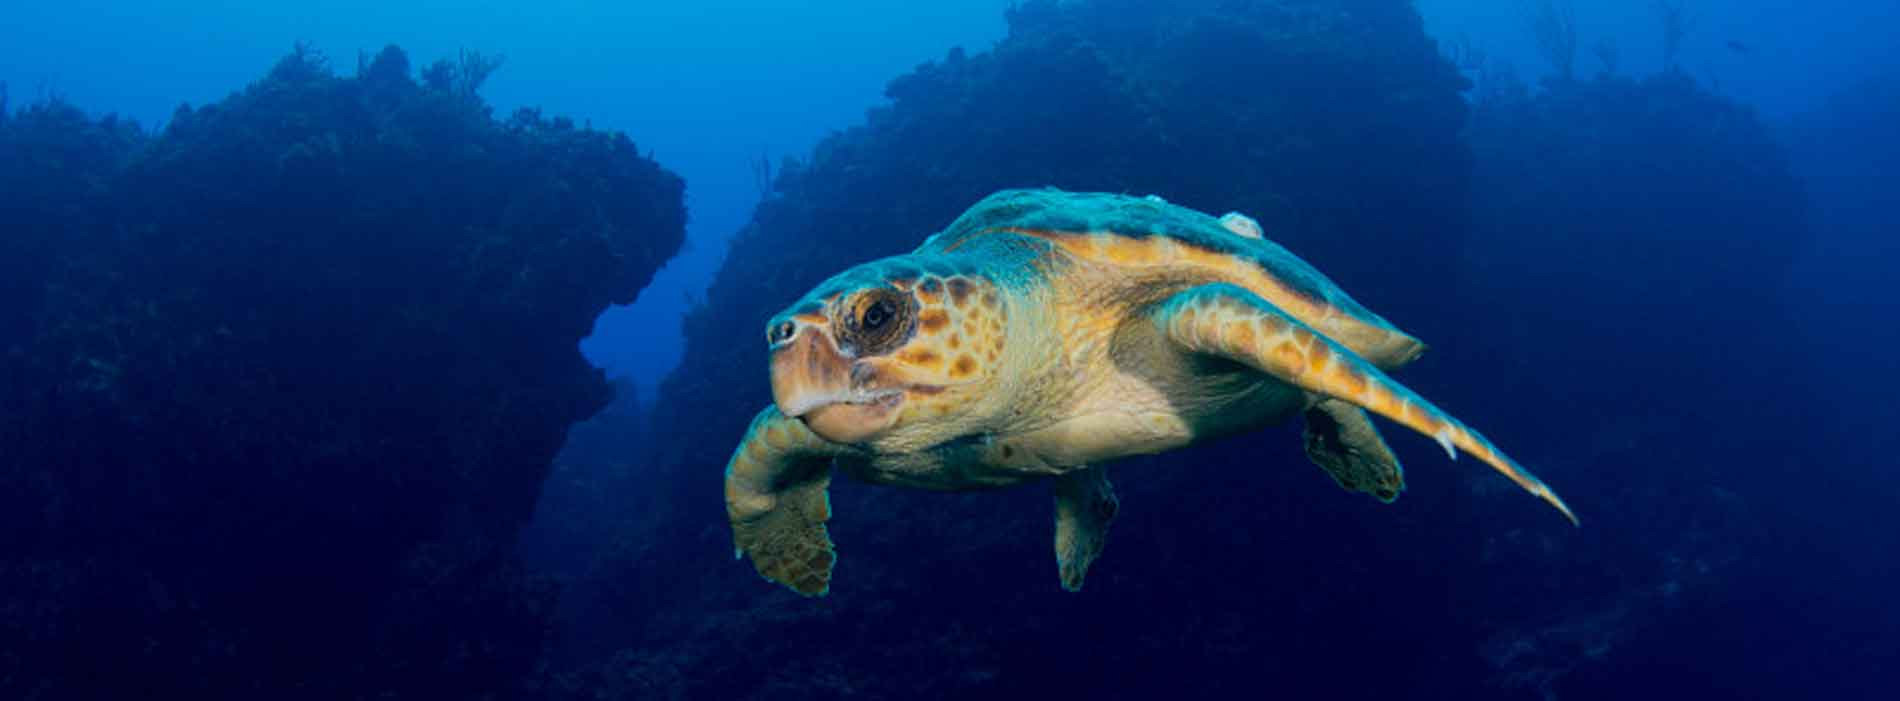 Sea turtle underwater in a coral reef